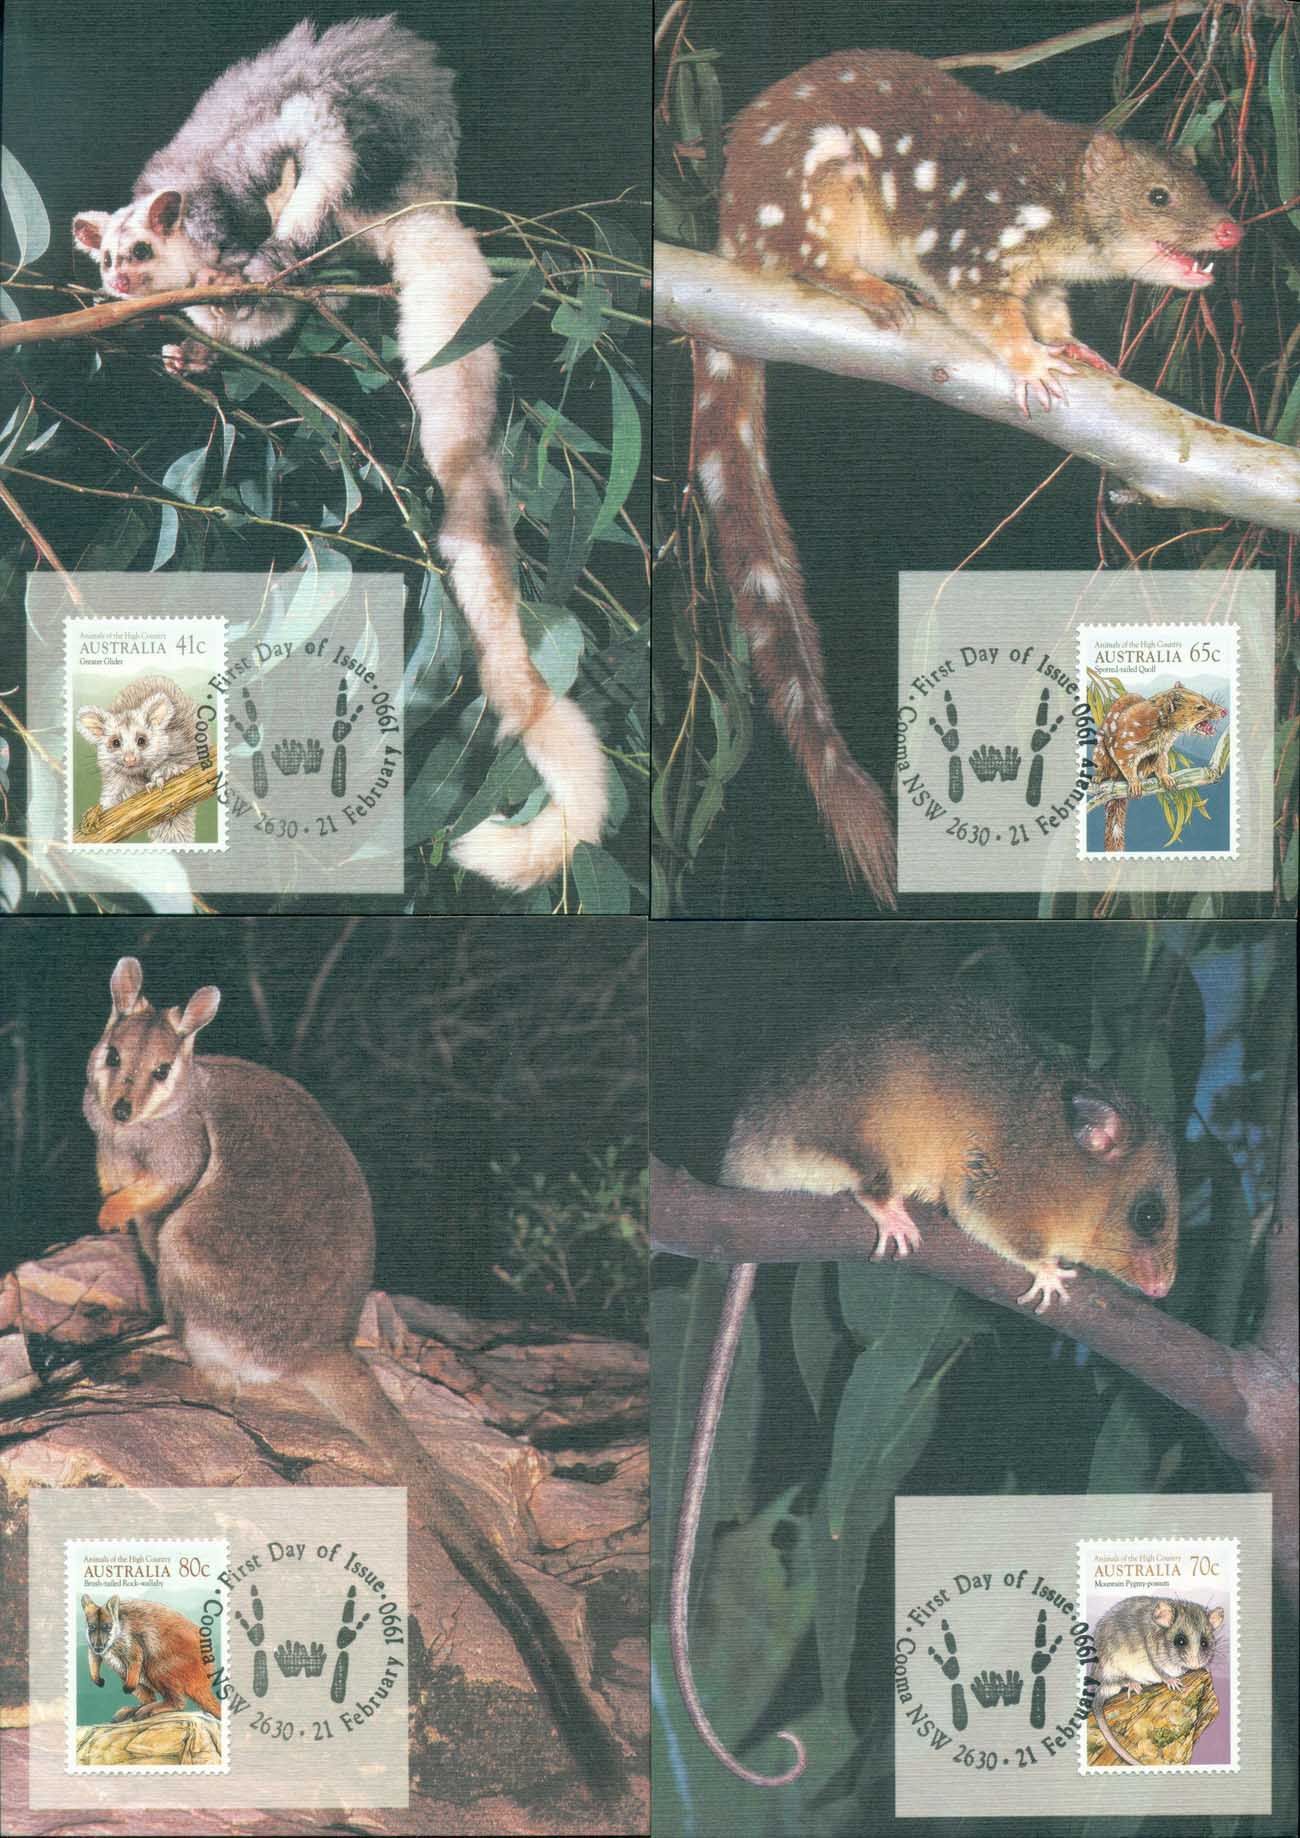 Australia 1990 Animals of the High Country 4xMaxicards